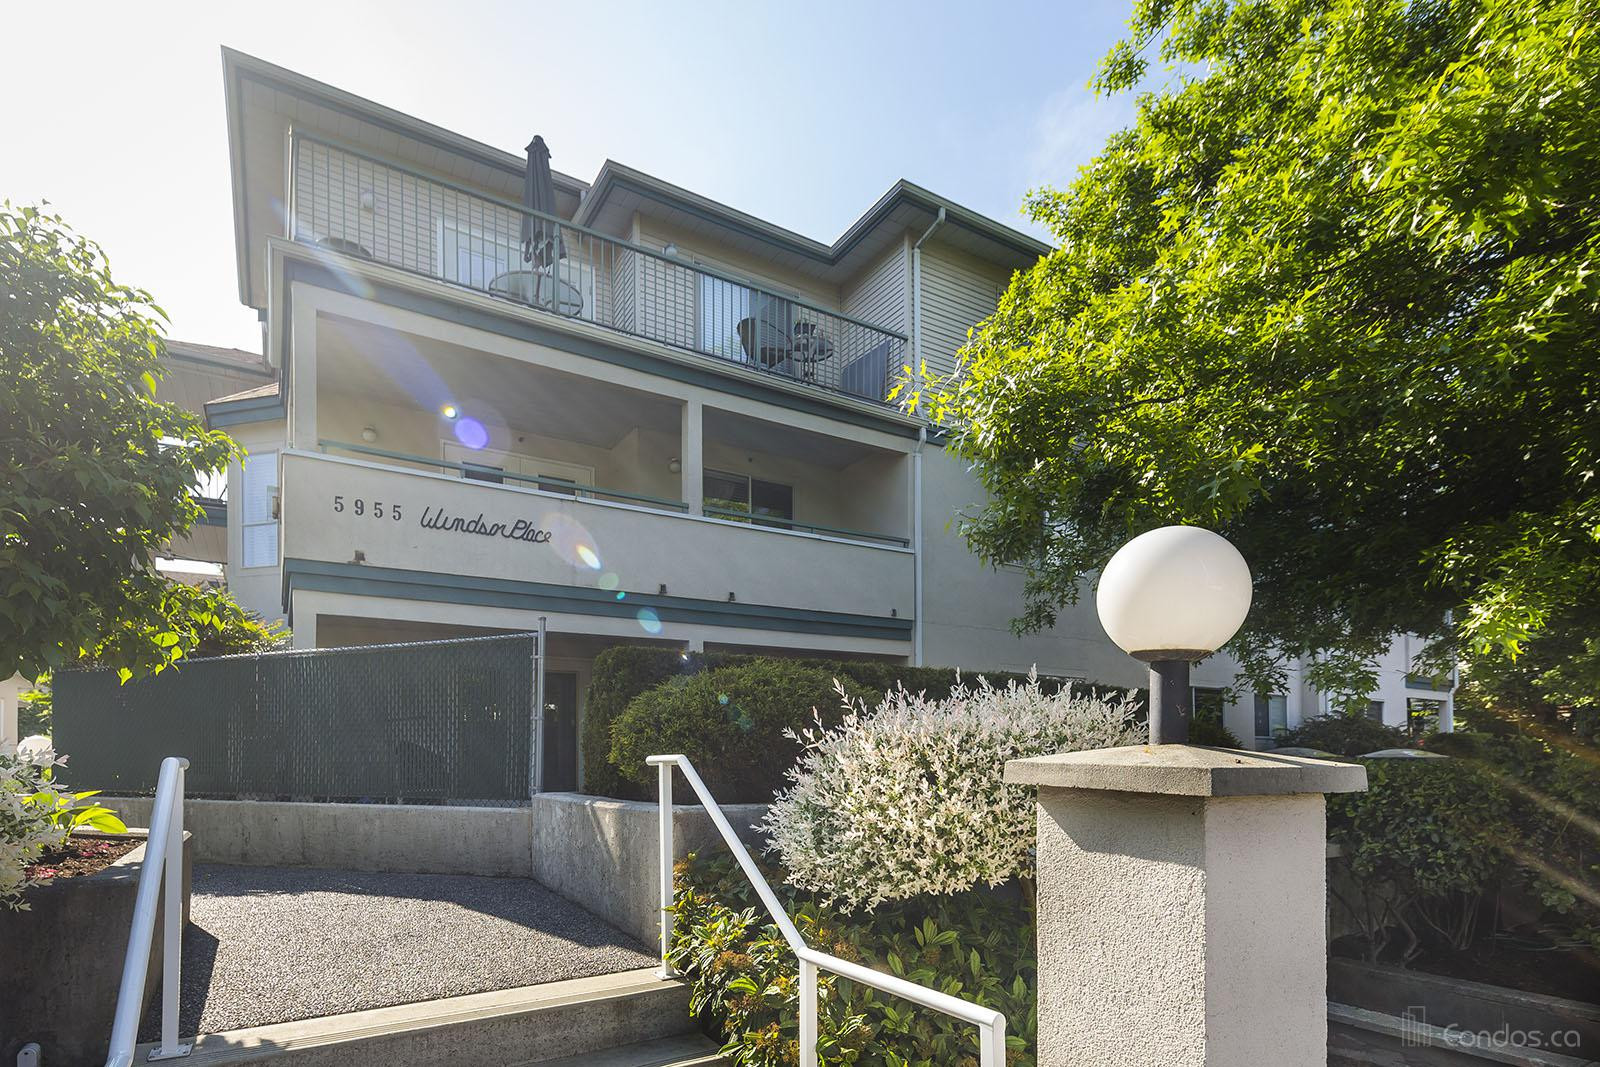 Windsor Place at 5955 177b St, Surrey 0